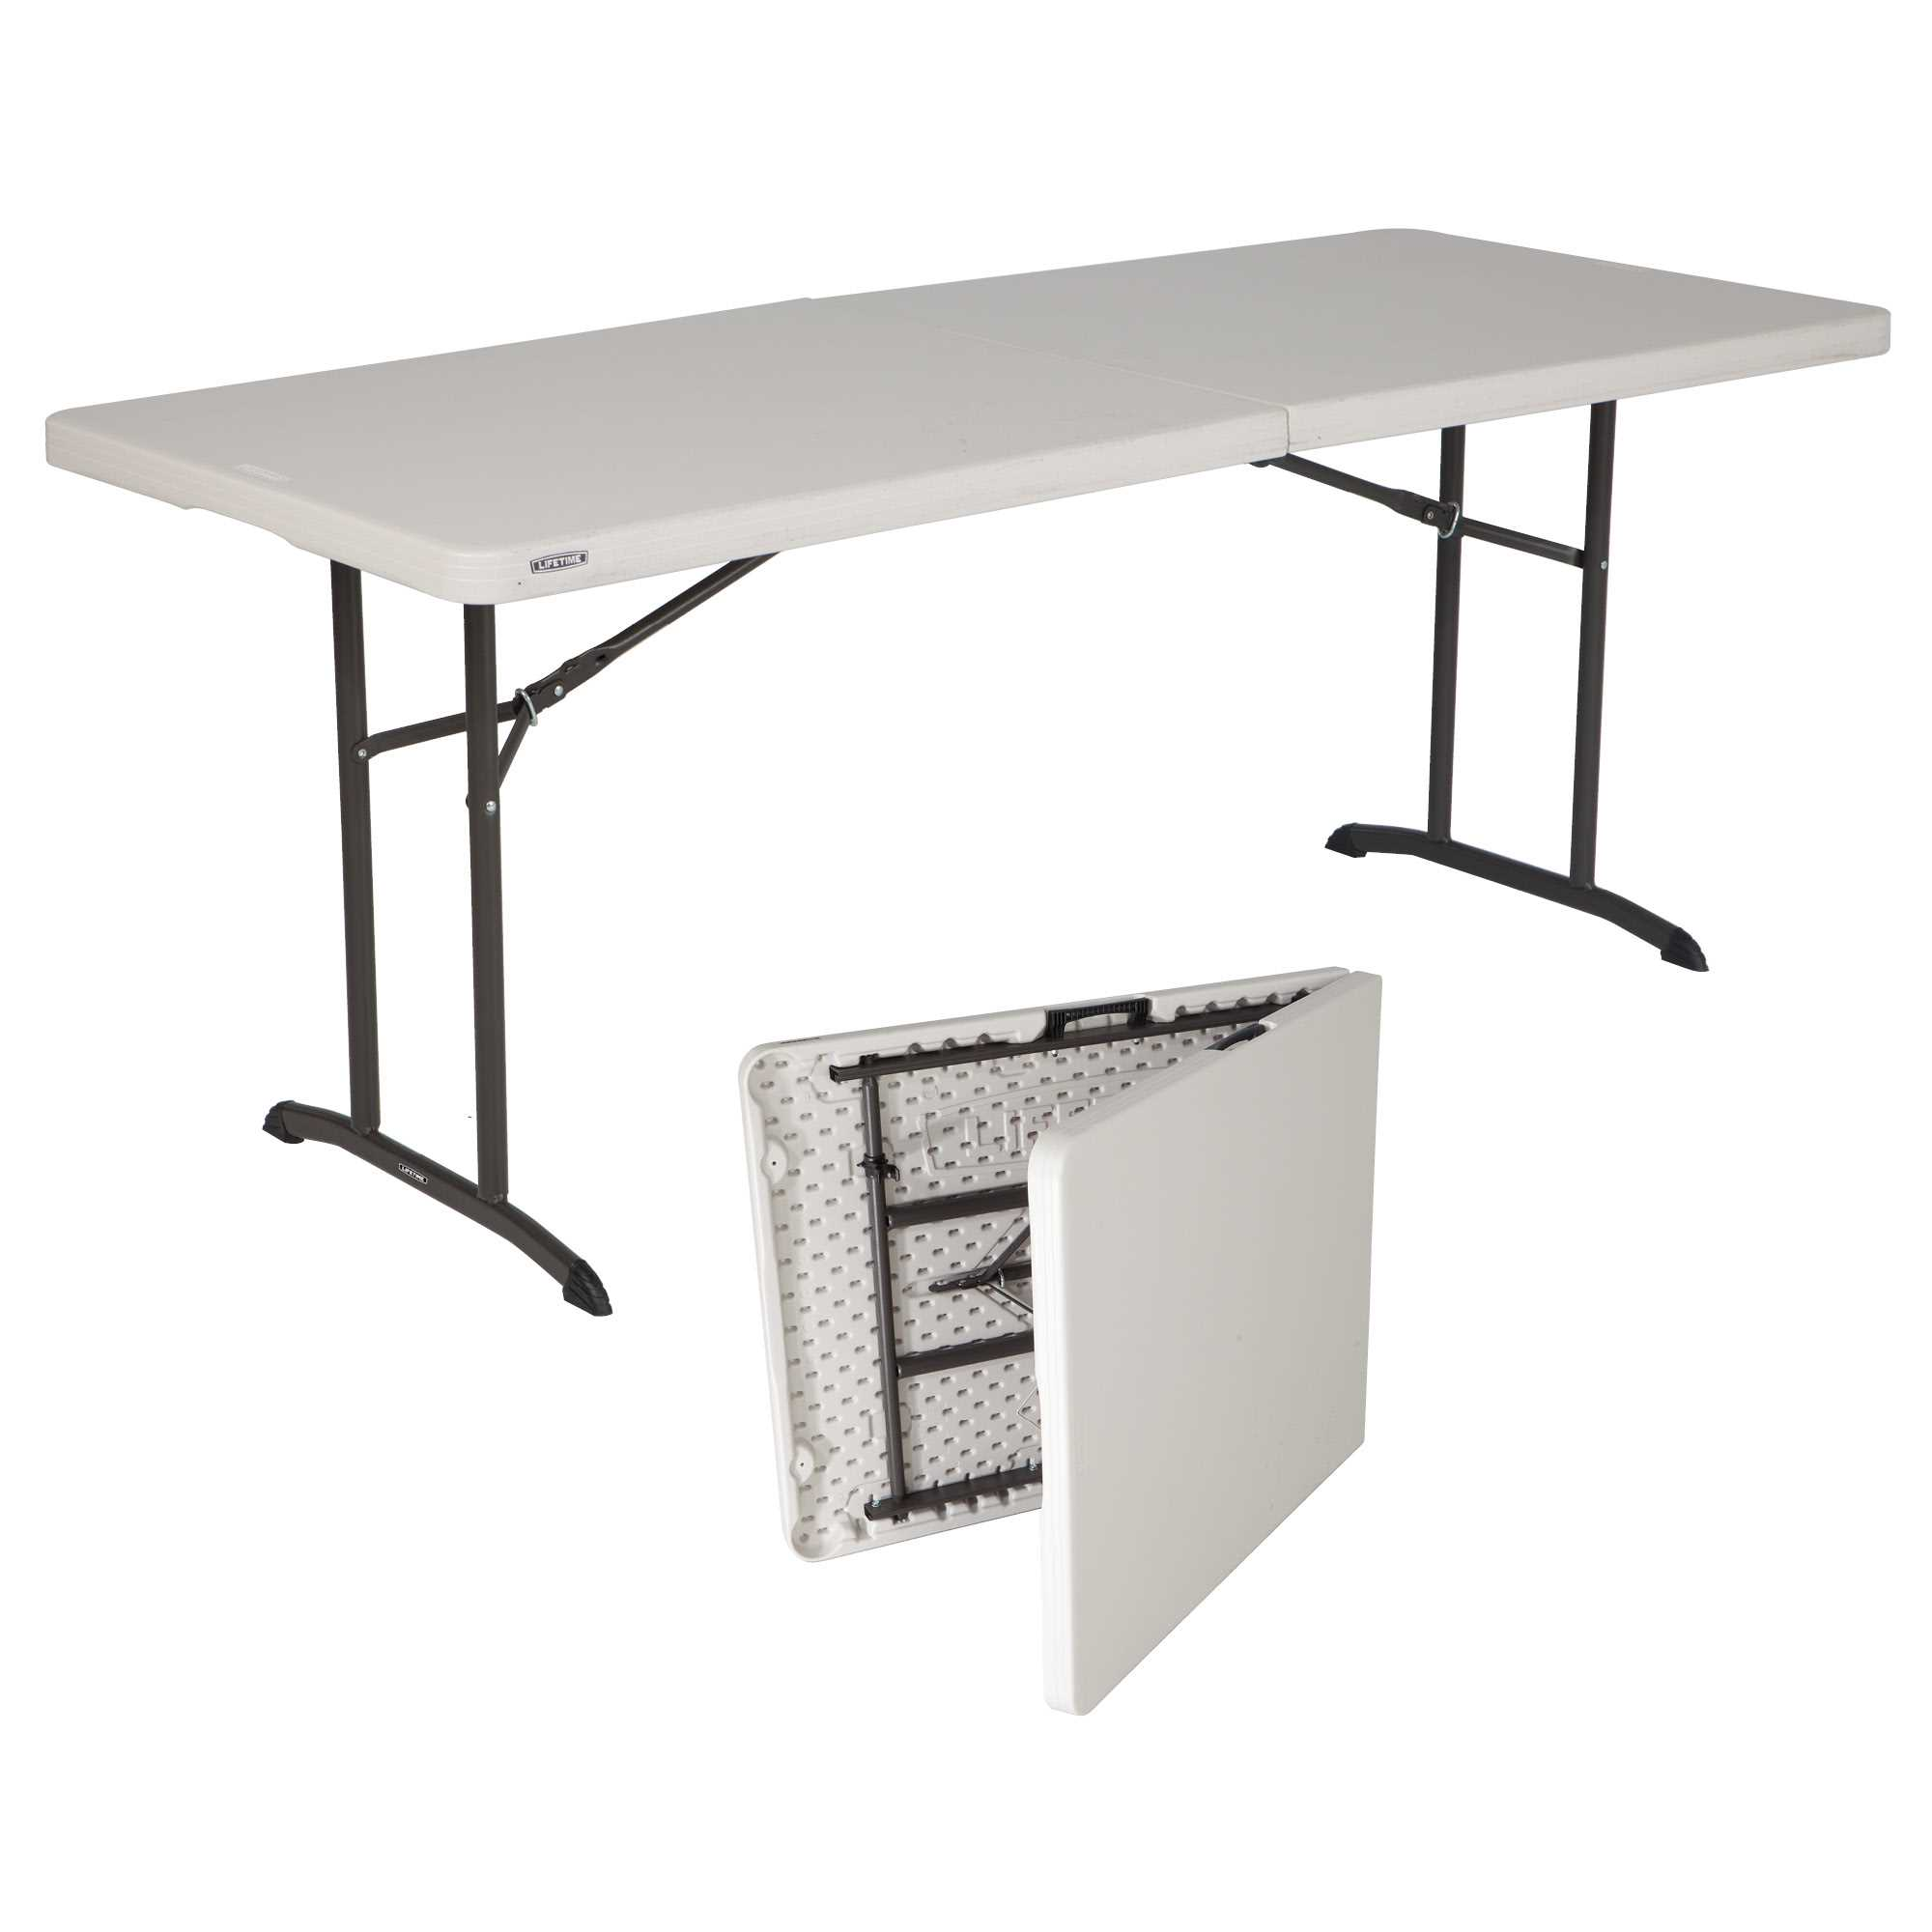 Lifetime 6-Foot Fold-In-Half Table (Commercial)